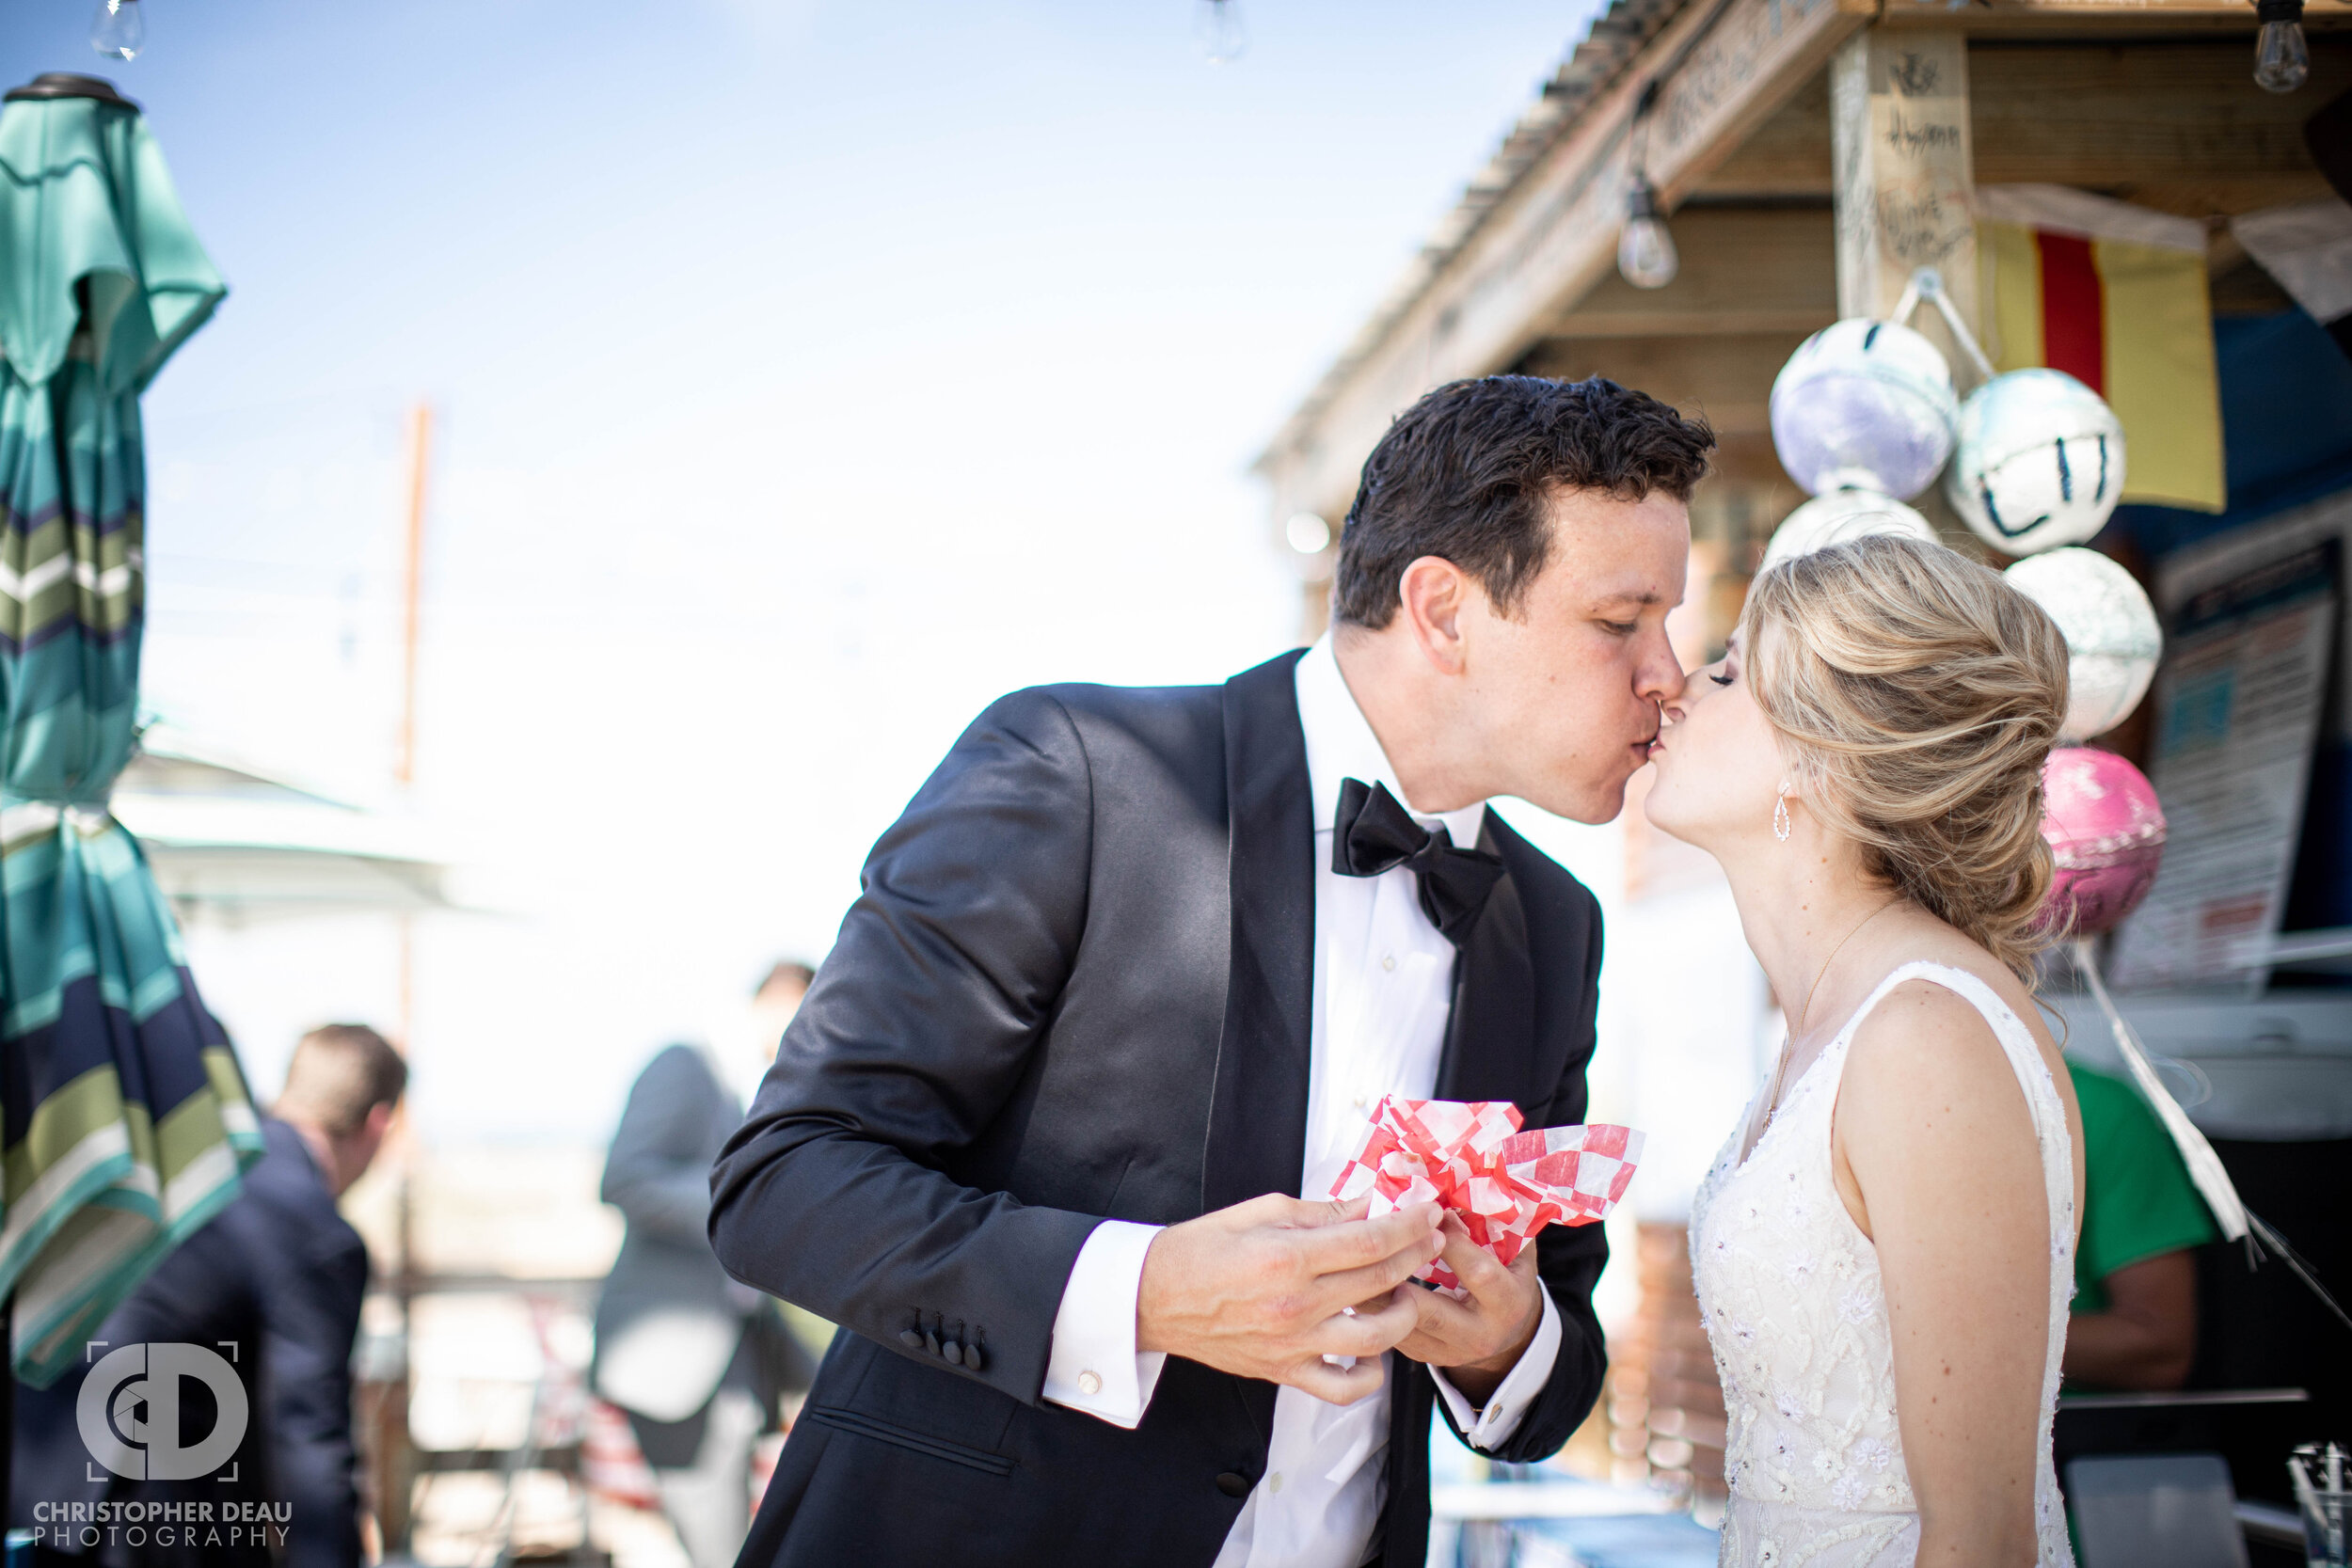 bride and groom find a hotdog stand at the beach and stop for a quick snack